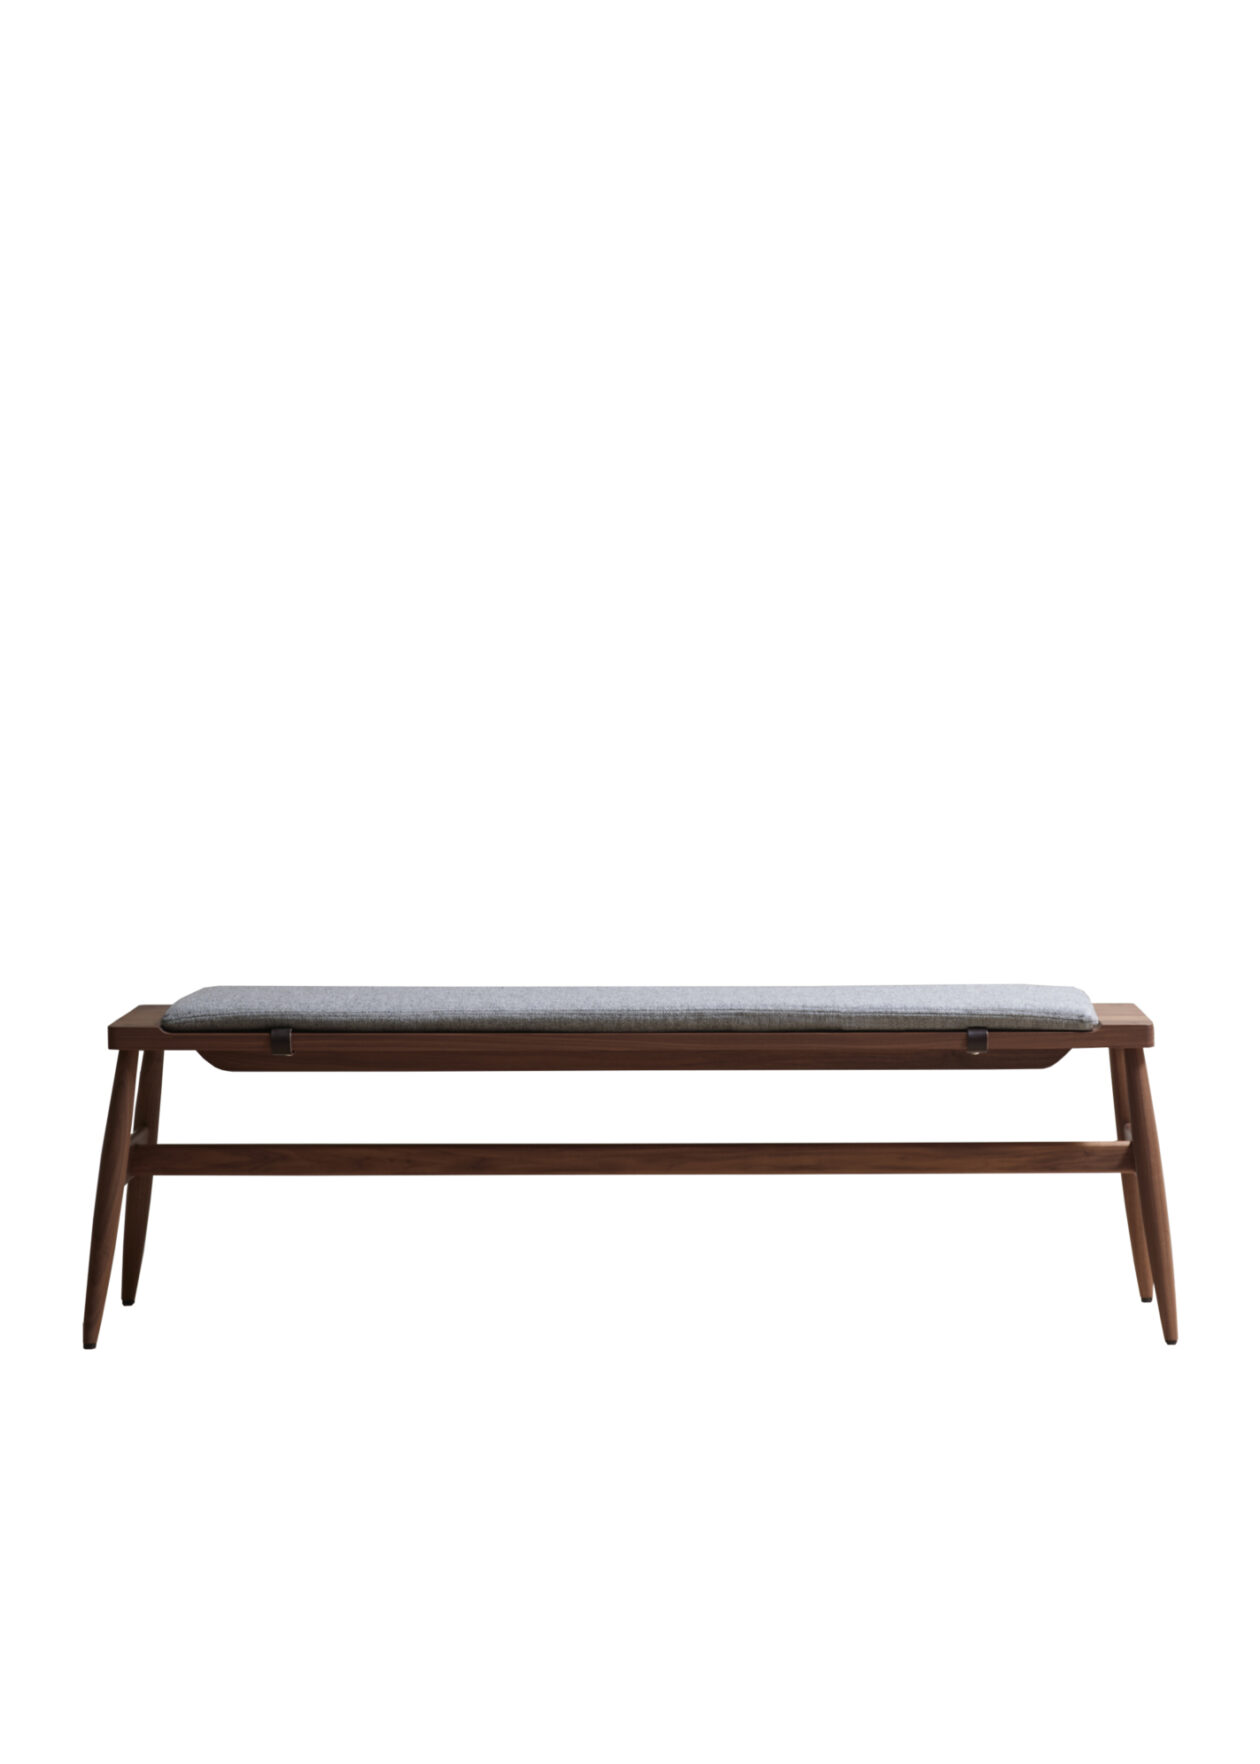 Pinch Imo Bench 2021 018